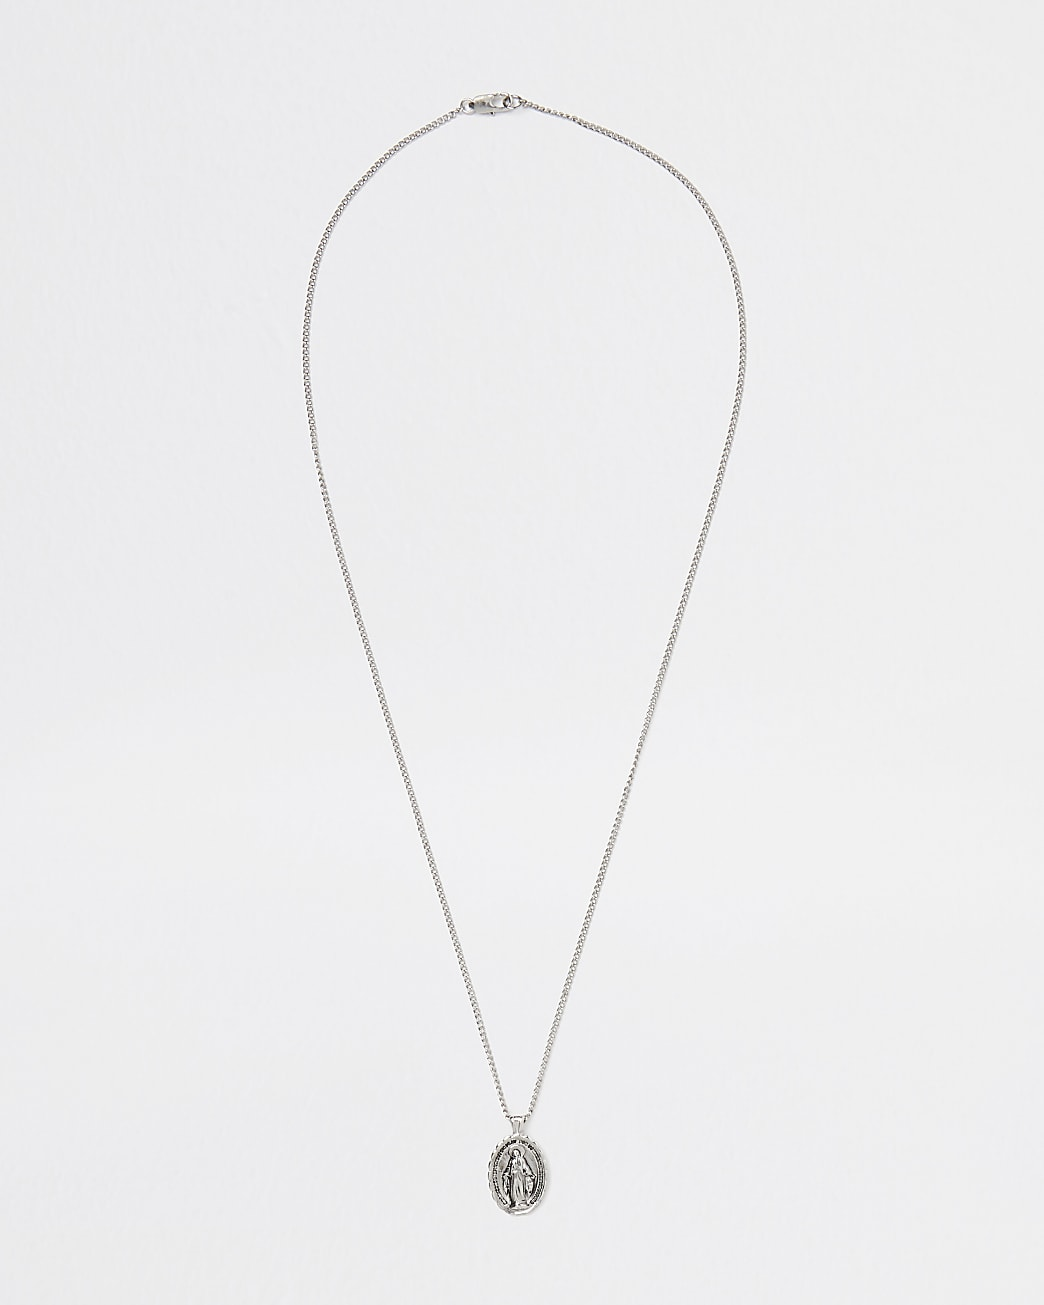 Silver oval embossed pendant necklace